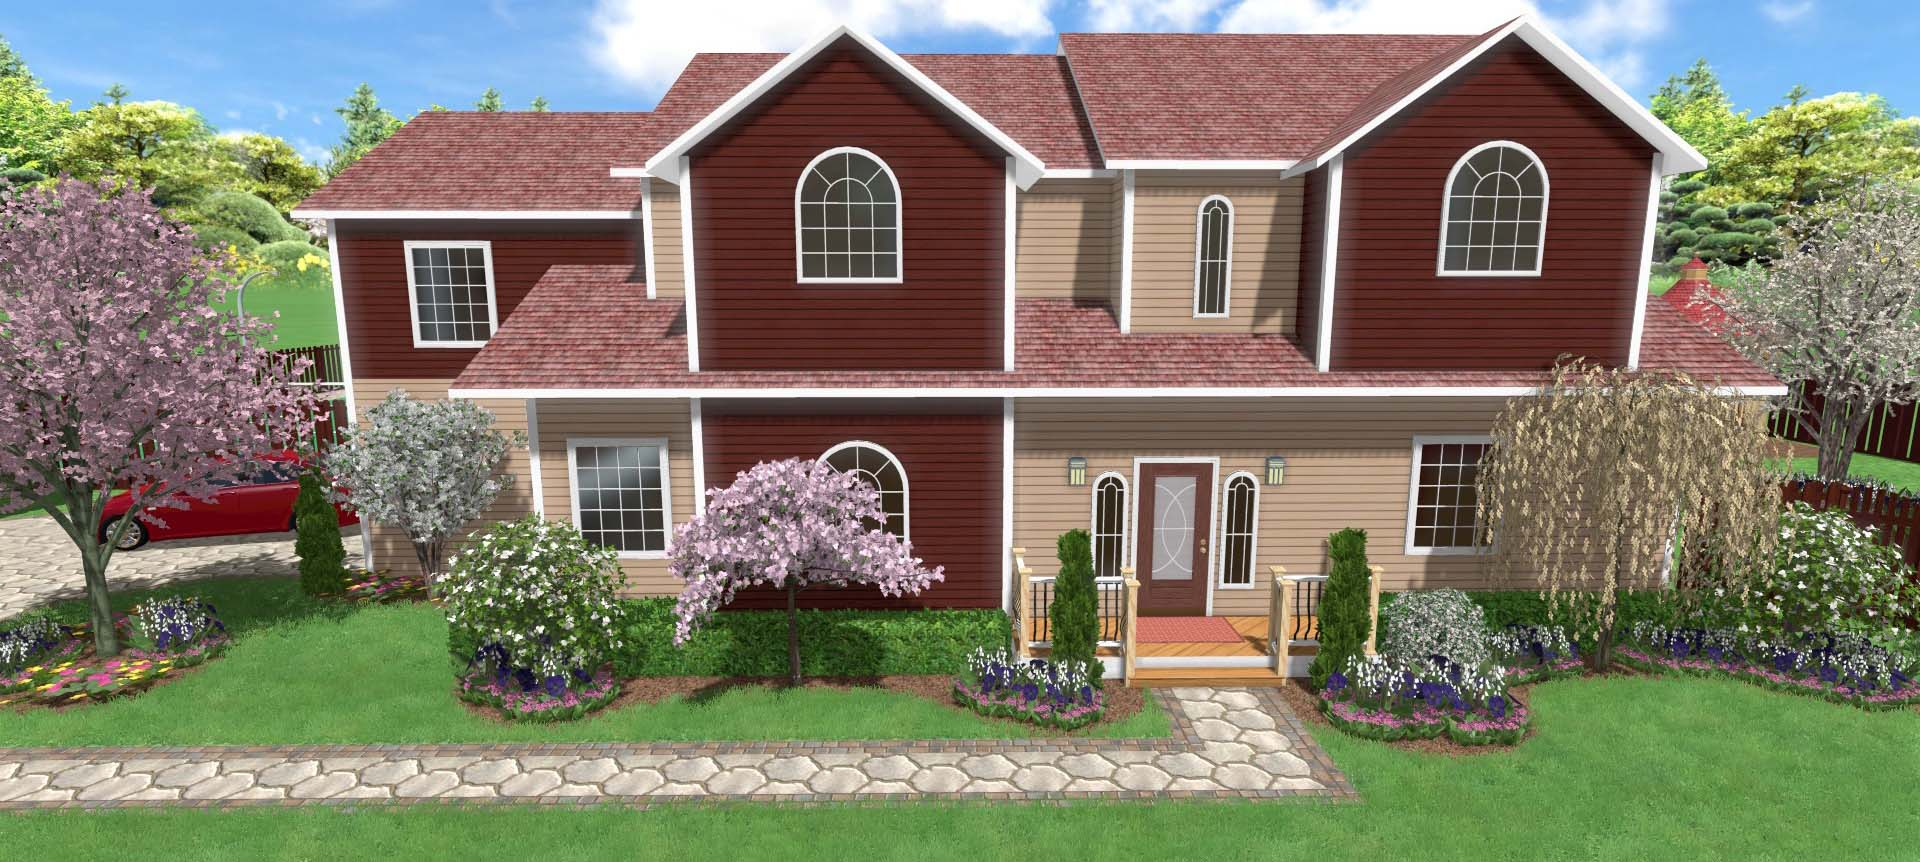 Home landscaping software for Garden design of house